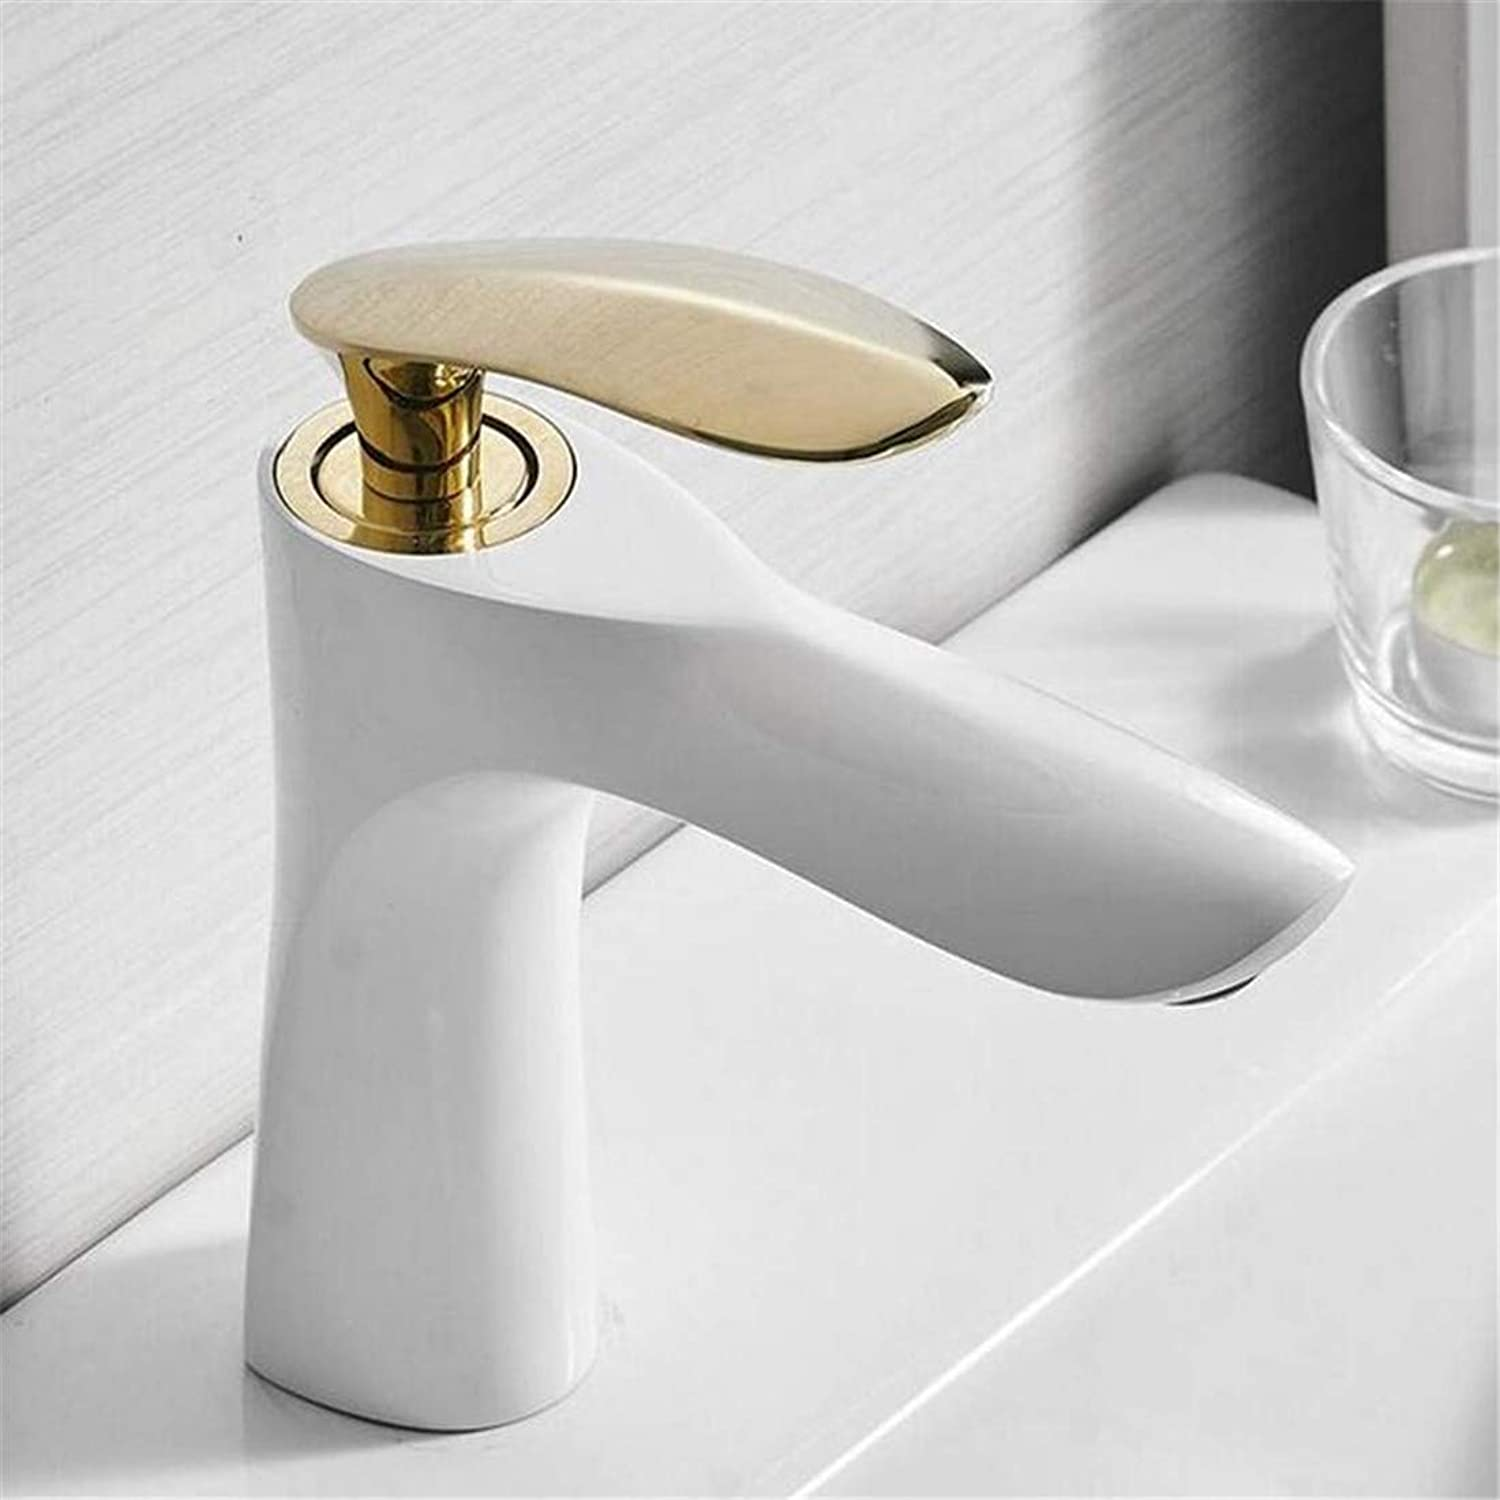 Faucet Vintage Plated Kitchen Bathroom Faucet Faucet Washbasin Mixer Art Bathroom Faucet Hot and Cold Water Basin Mixer Tap